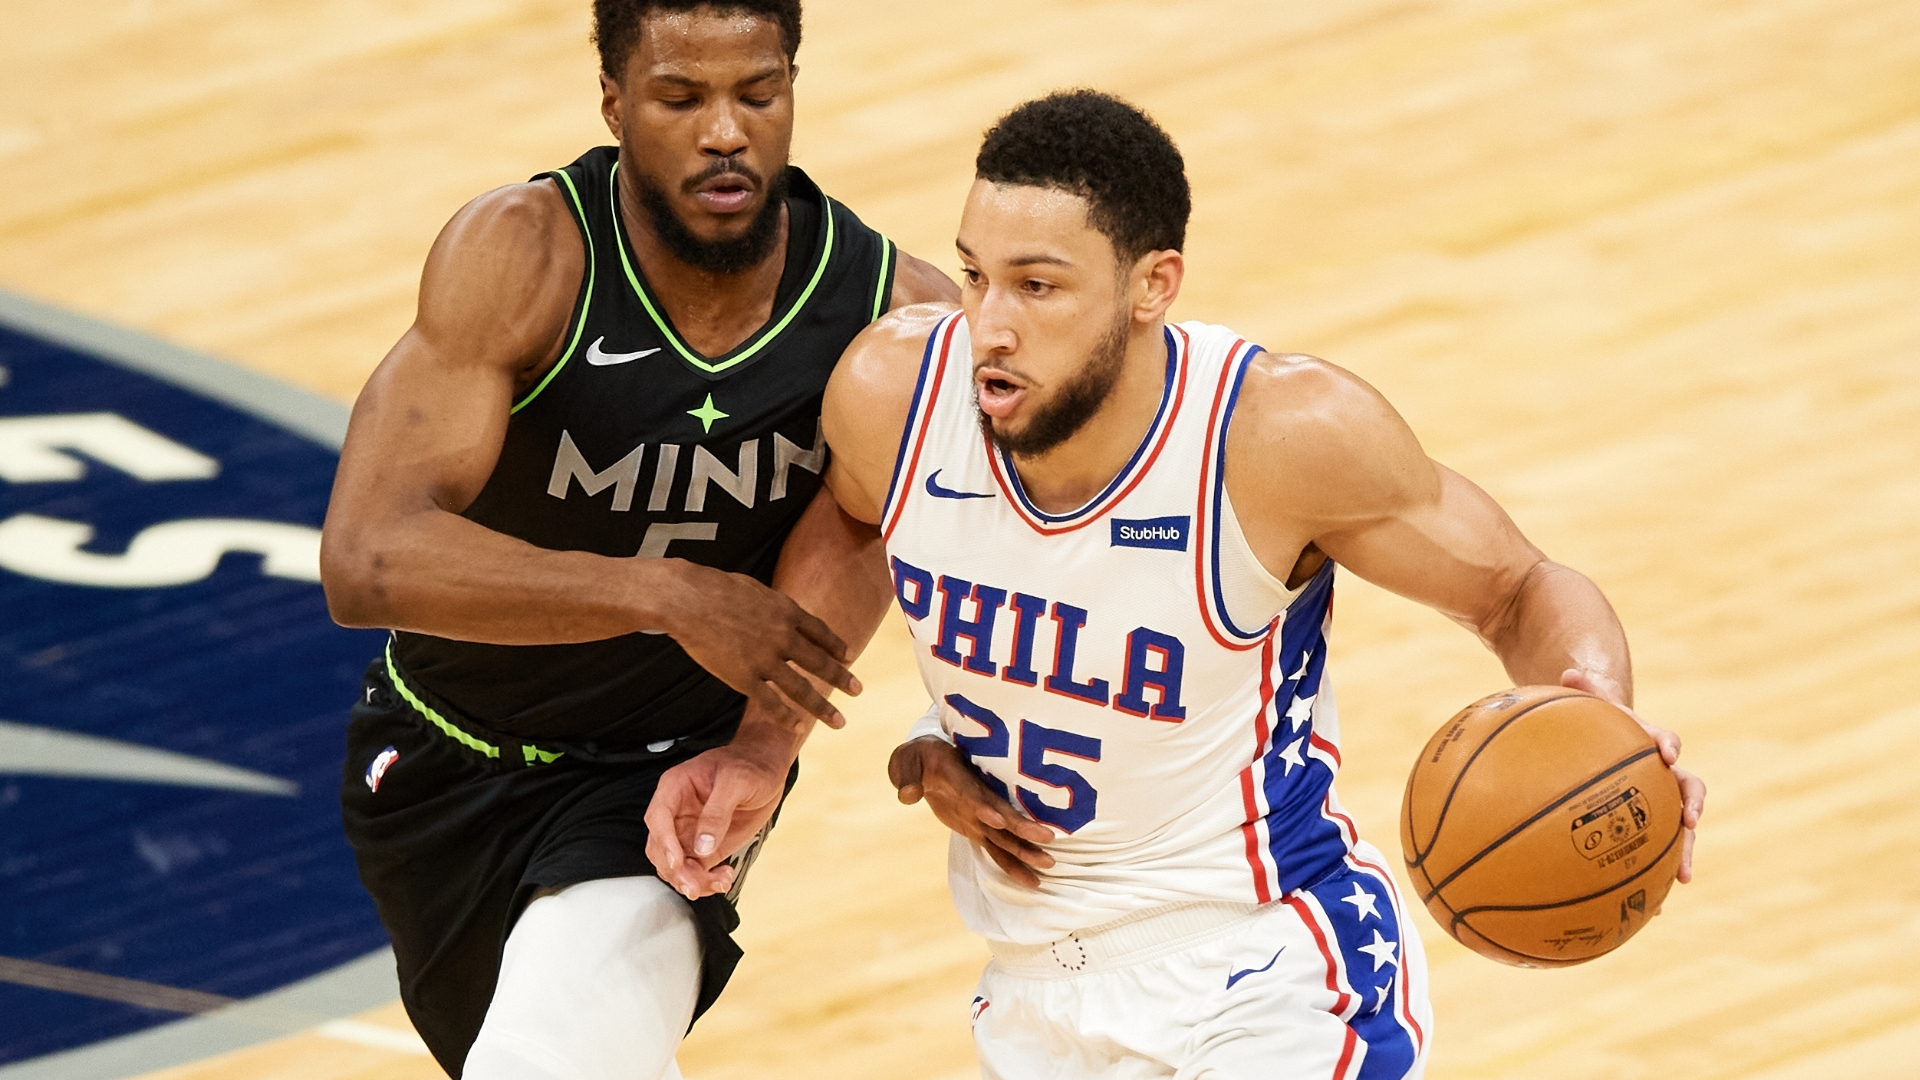 Ben Simmons trade rumors: Best potential destinations, offers for 76ers star